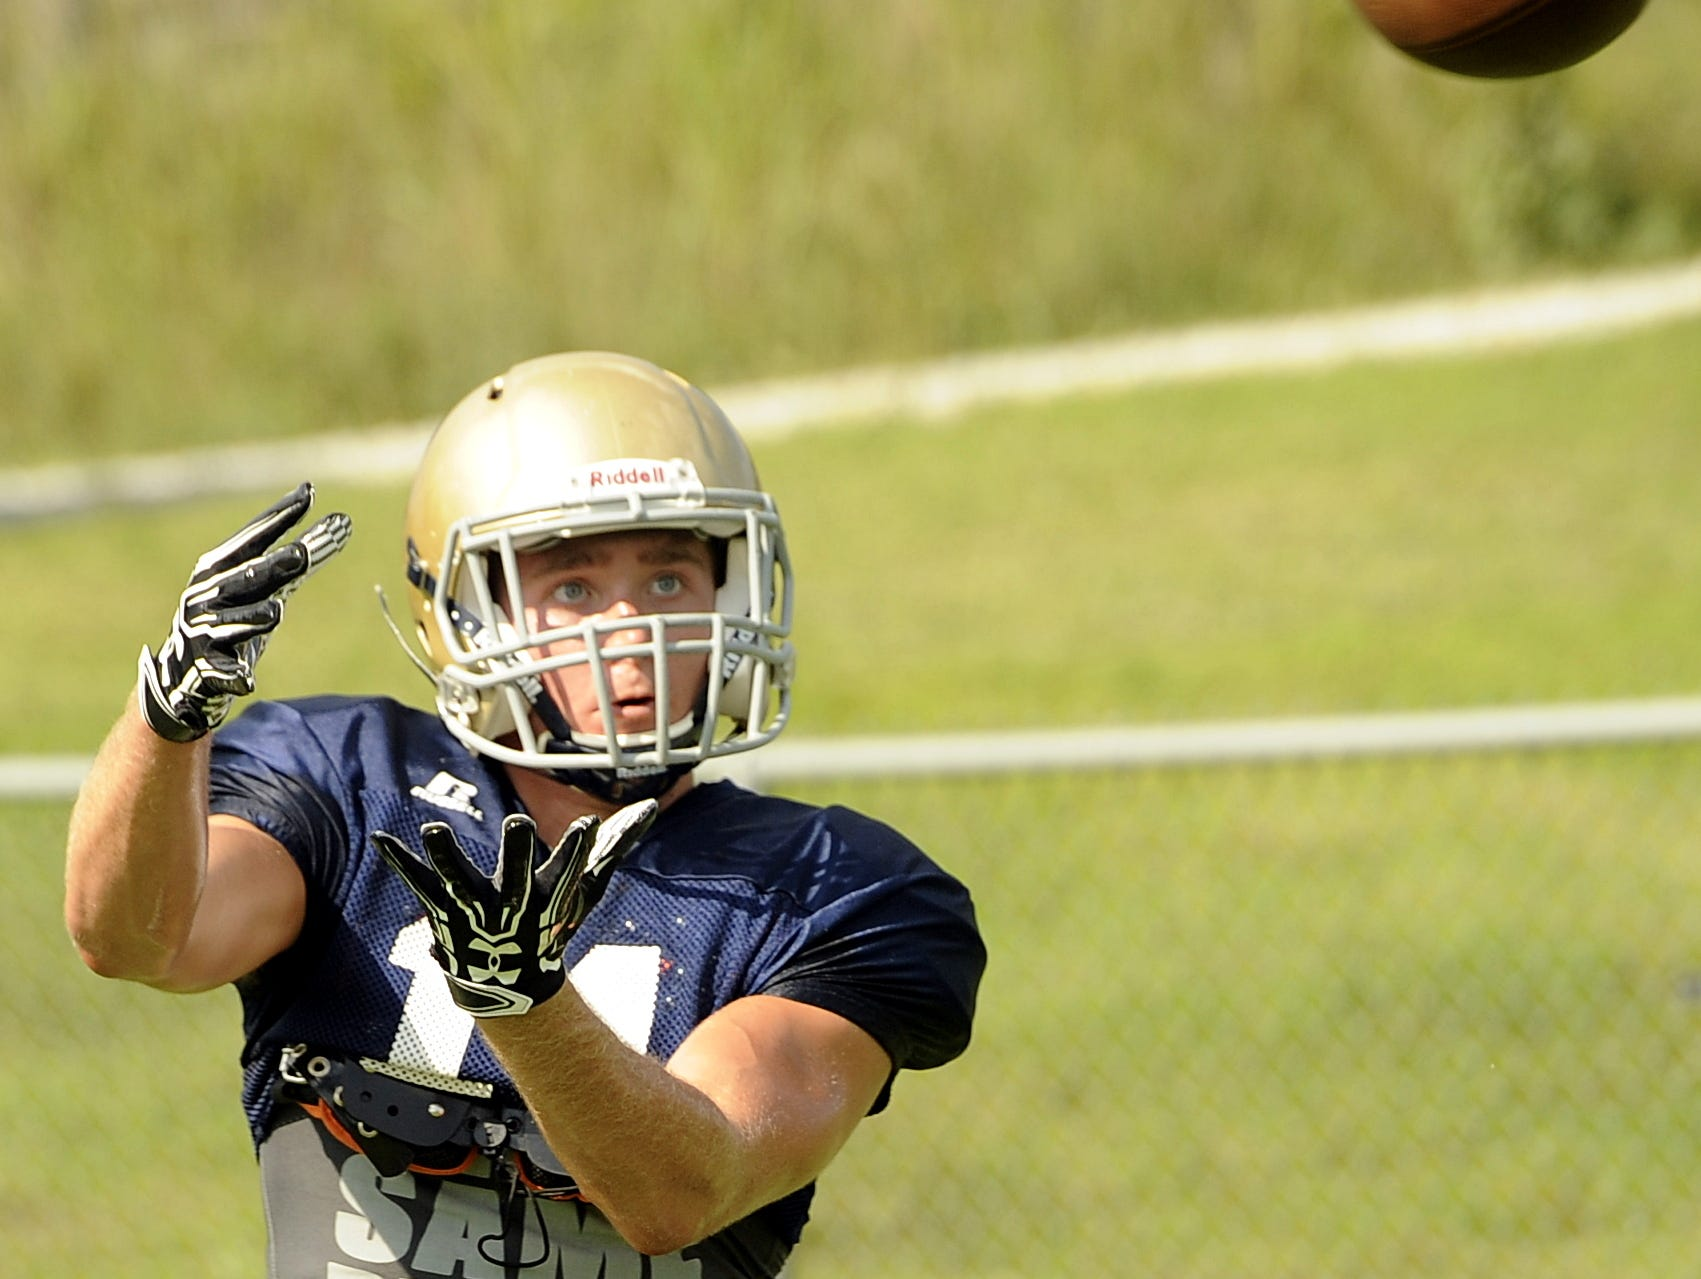 Independence wide receiver Owen Murphy catches a pass during Monday afternoon's practice.